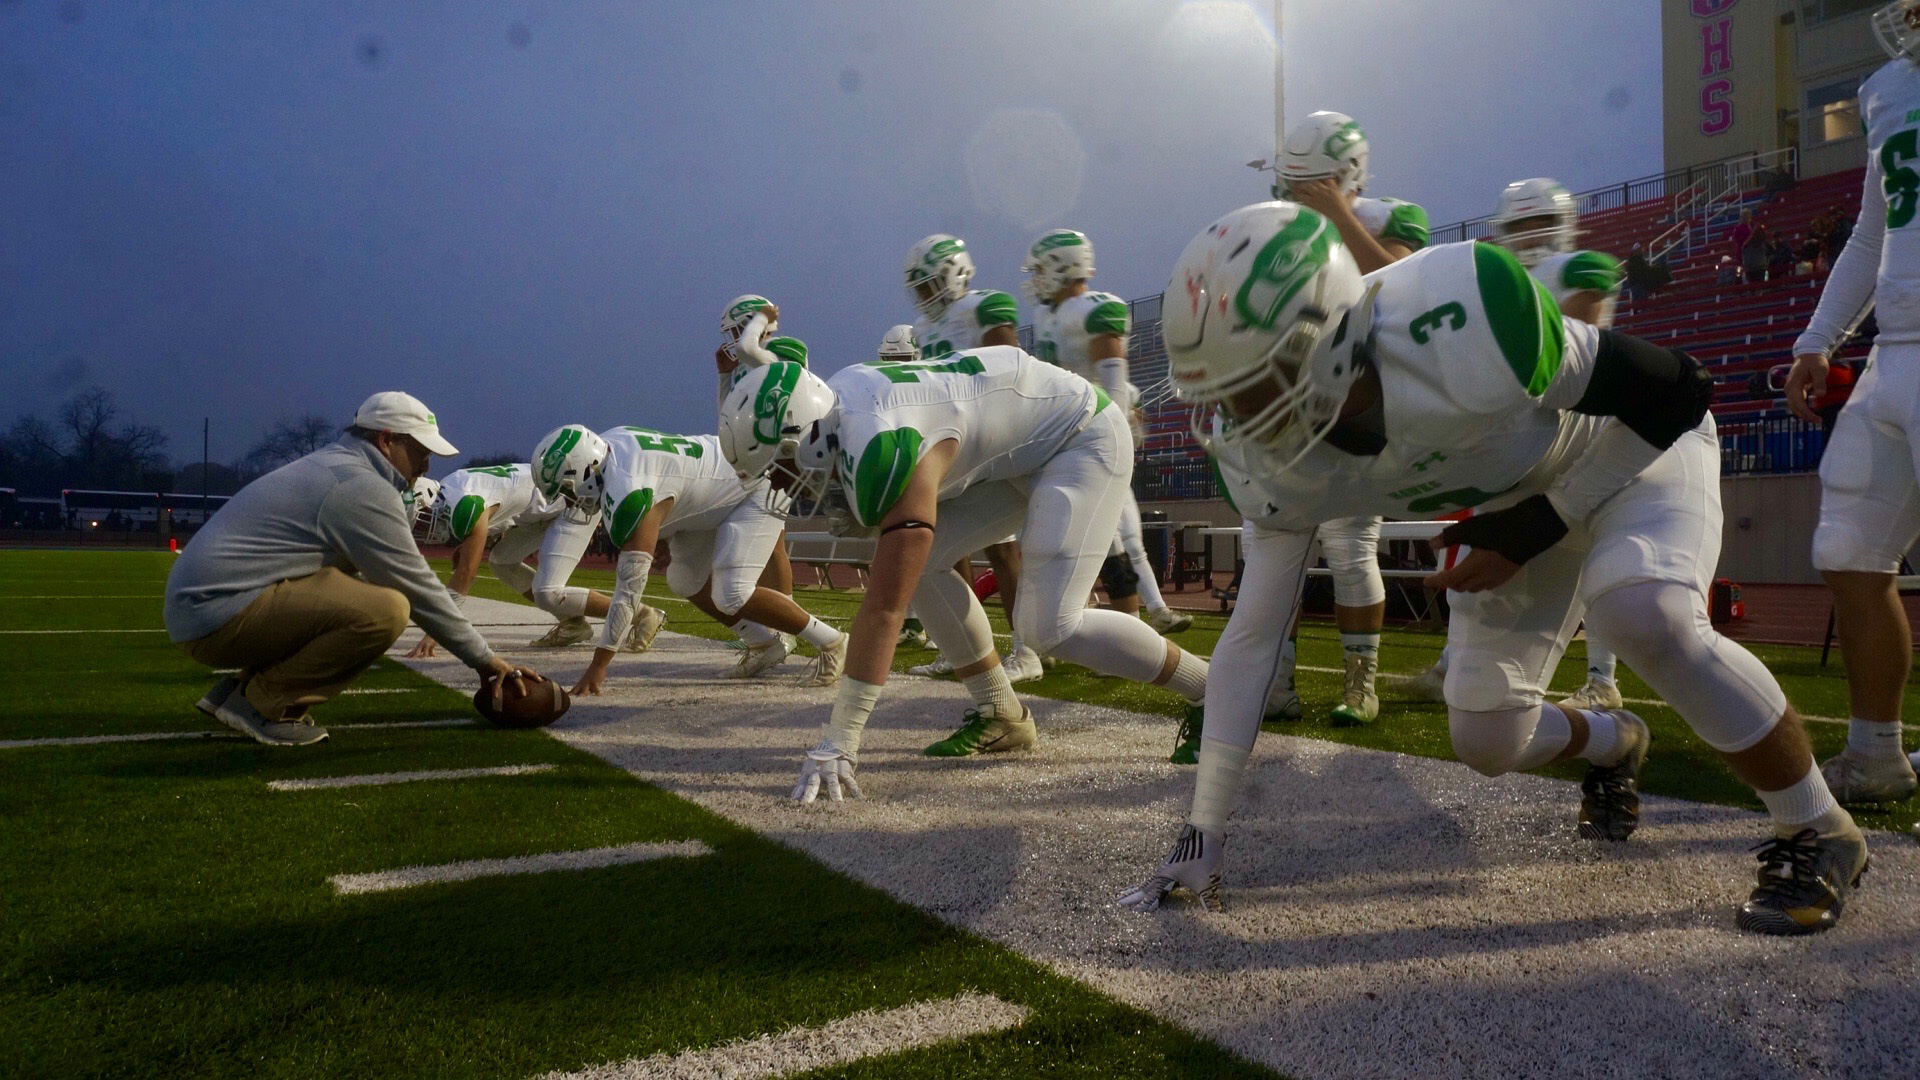 The Wall Hawks prepare for the game just prior to facing the Pilot Point Bearcats for the 2019 regional playoff game at Newton Field in Graham, Texas on Nov. 29, 2019. (LIVE! Photo/Joe Z. Hyde)